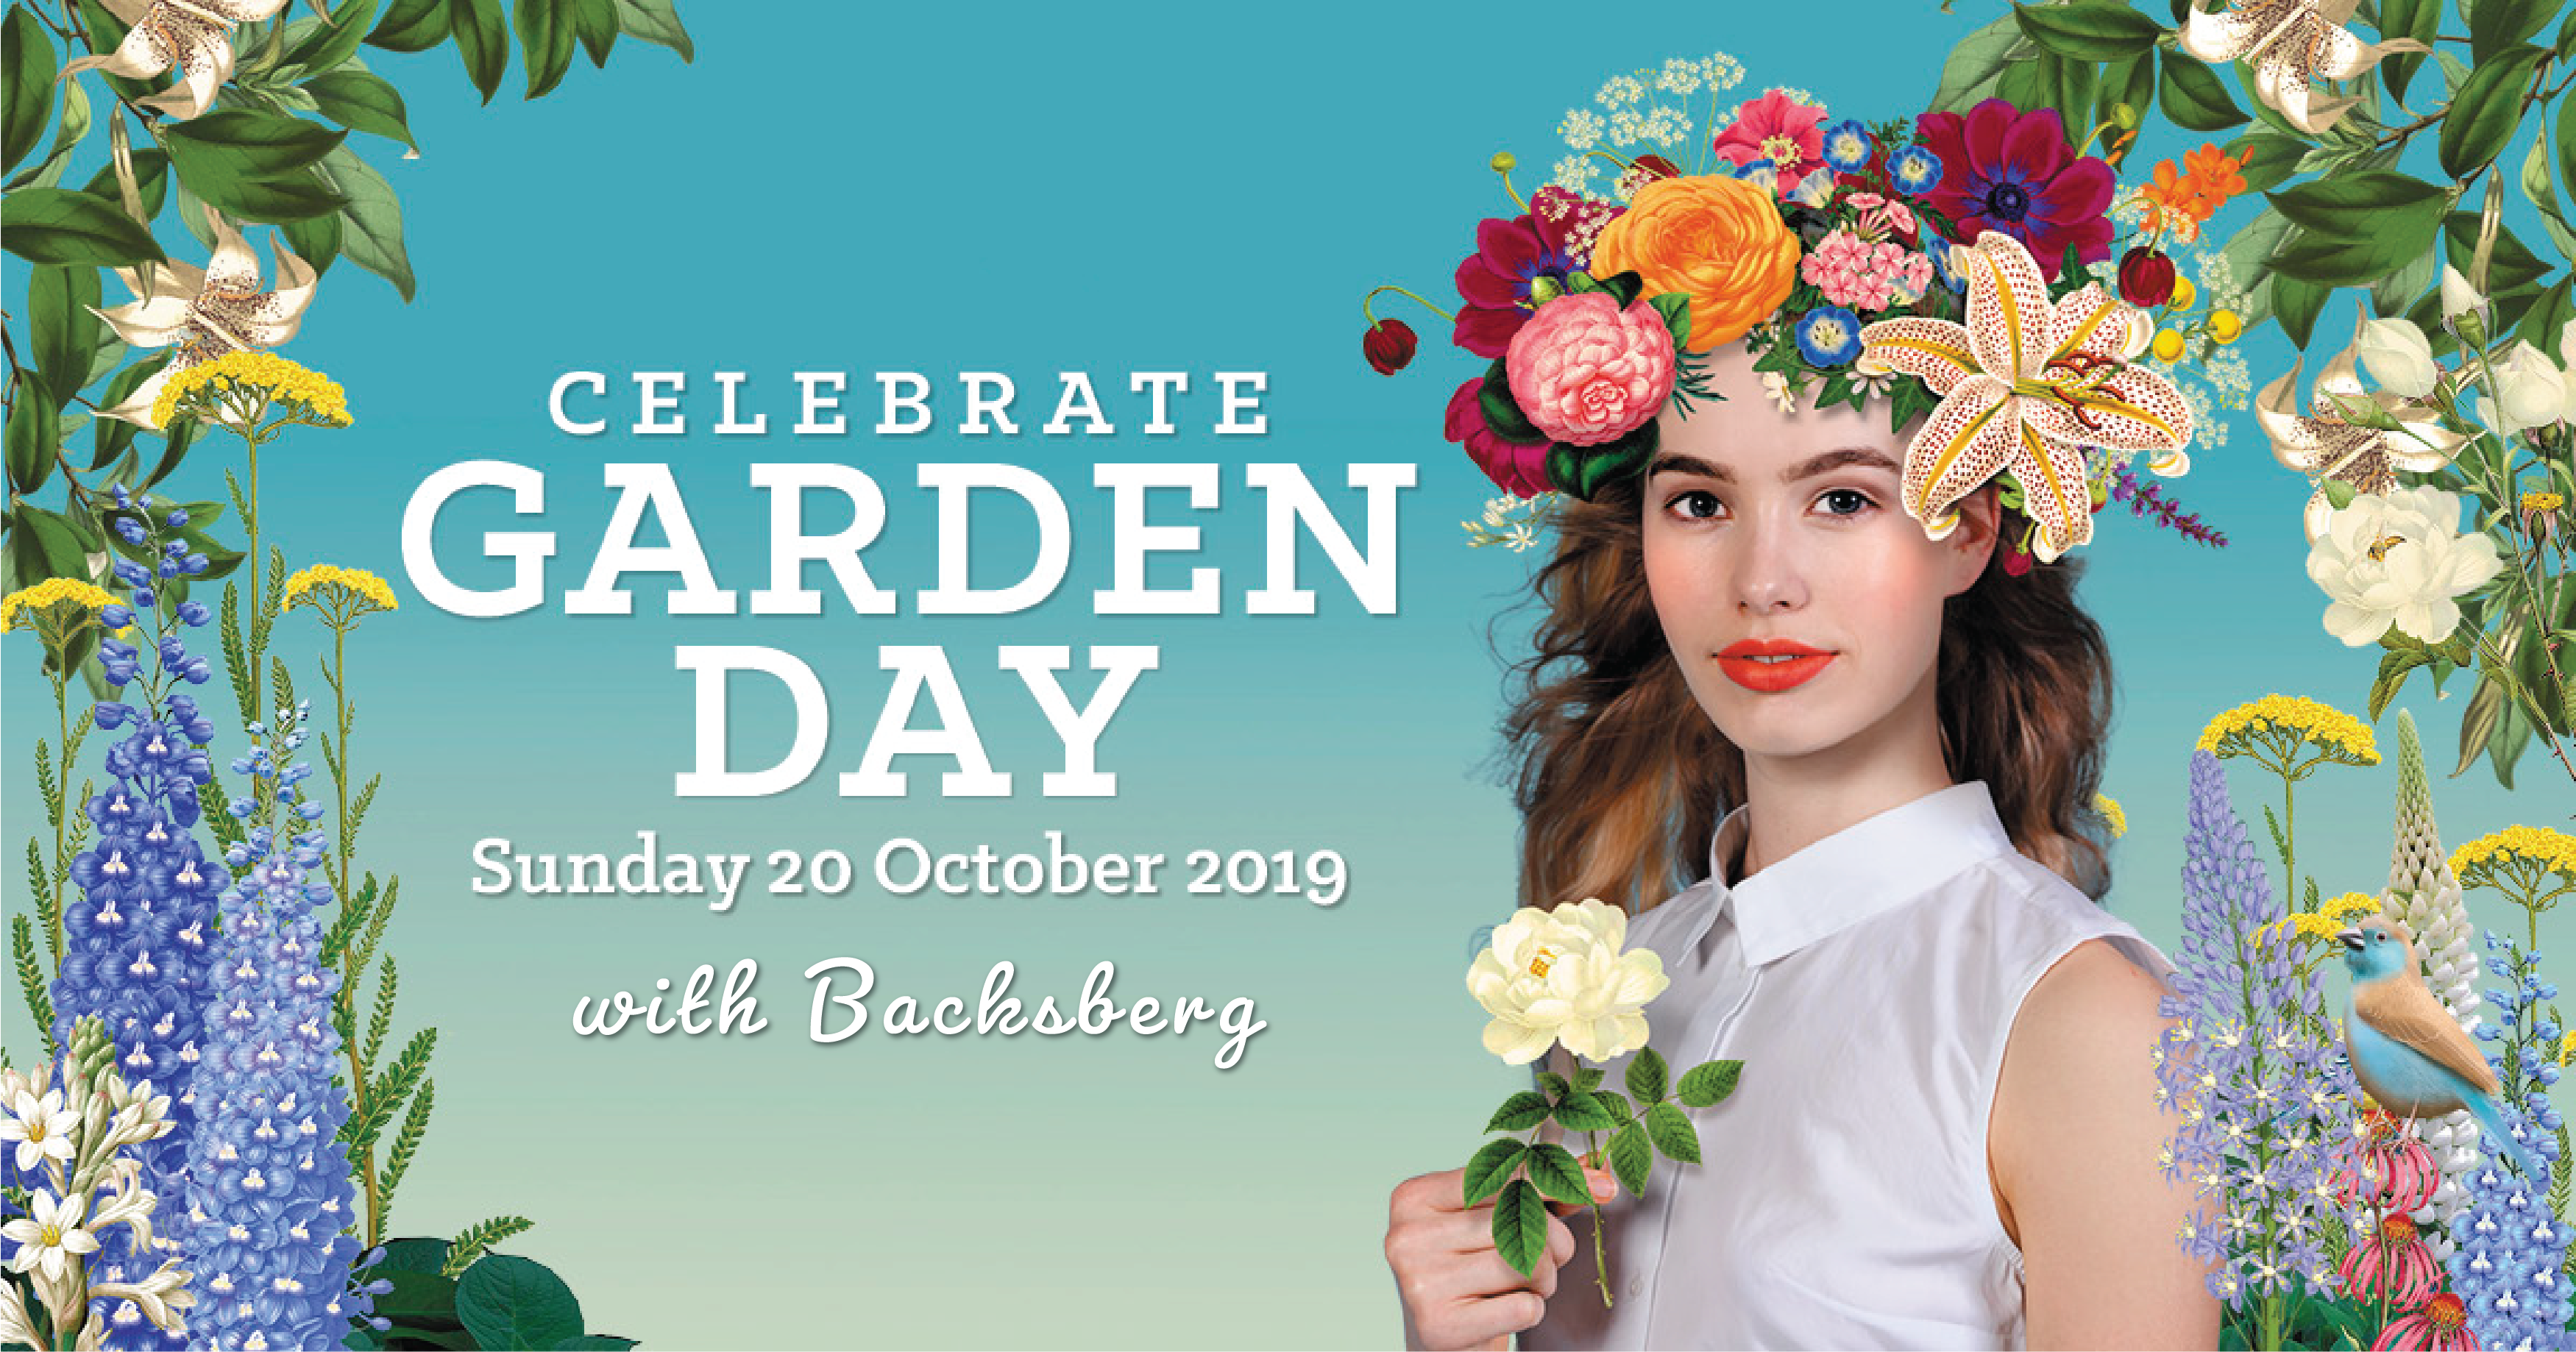 Garden Day at Backsberg